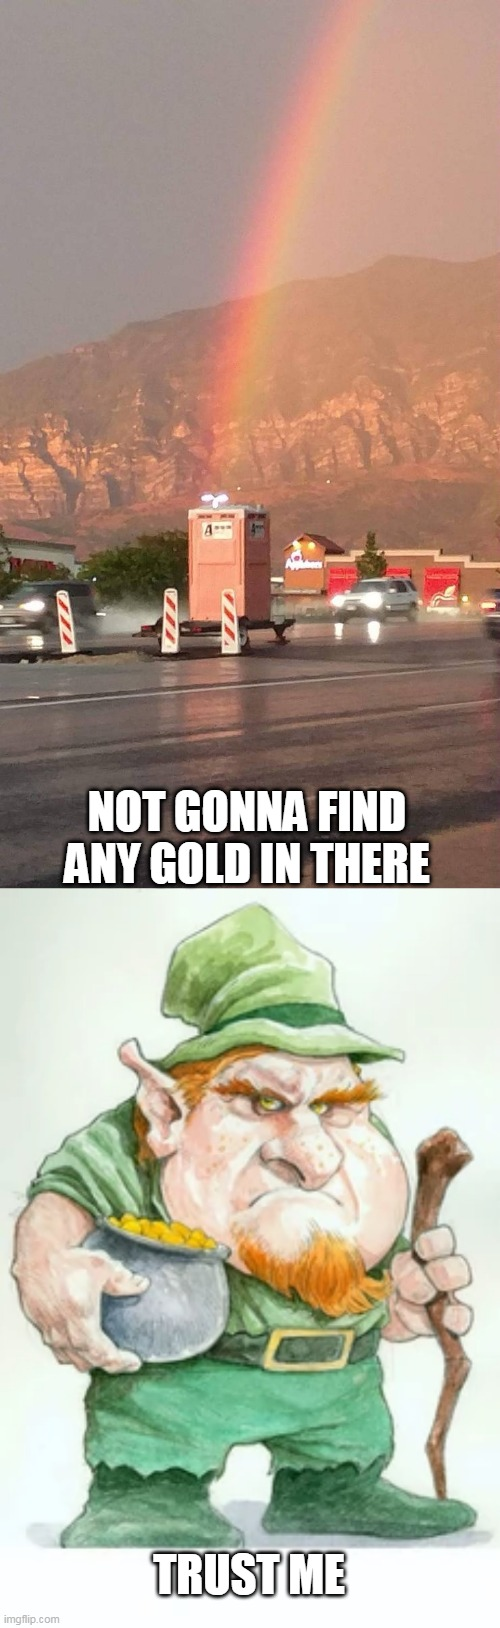 I'LL TAKE HIS WORD ON IT |  NOT GONNA FIND ANY GOLD IN THERE; TRUST ME | image tagged in memes,rainbow,leprechaun,toilet | made w/ Imgflip meme maker